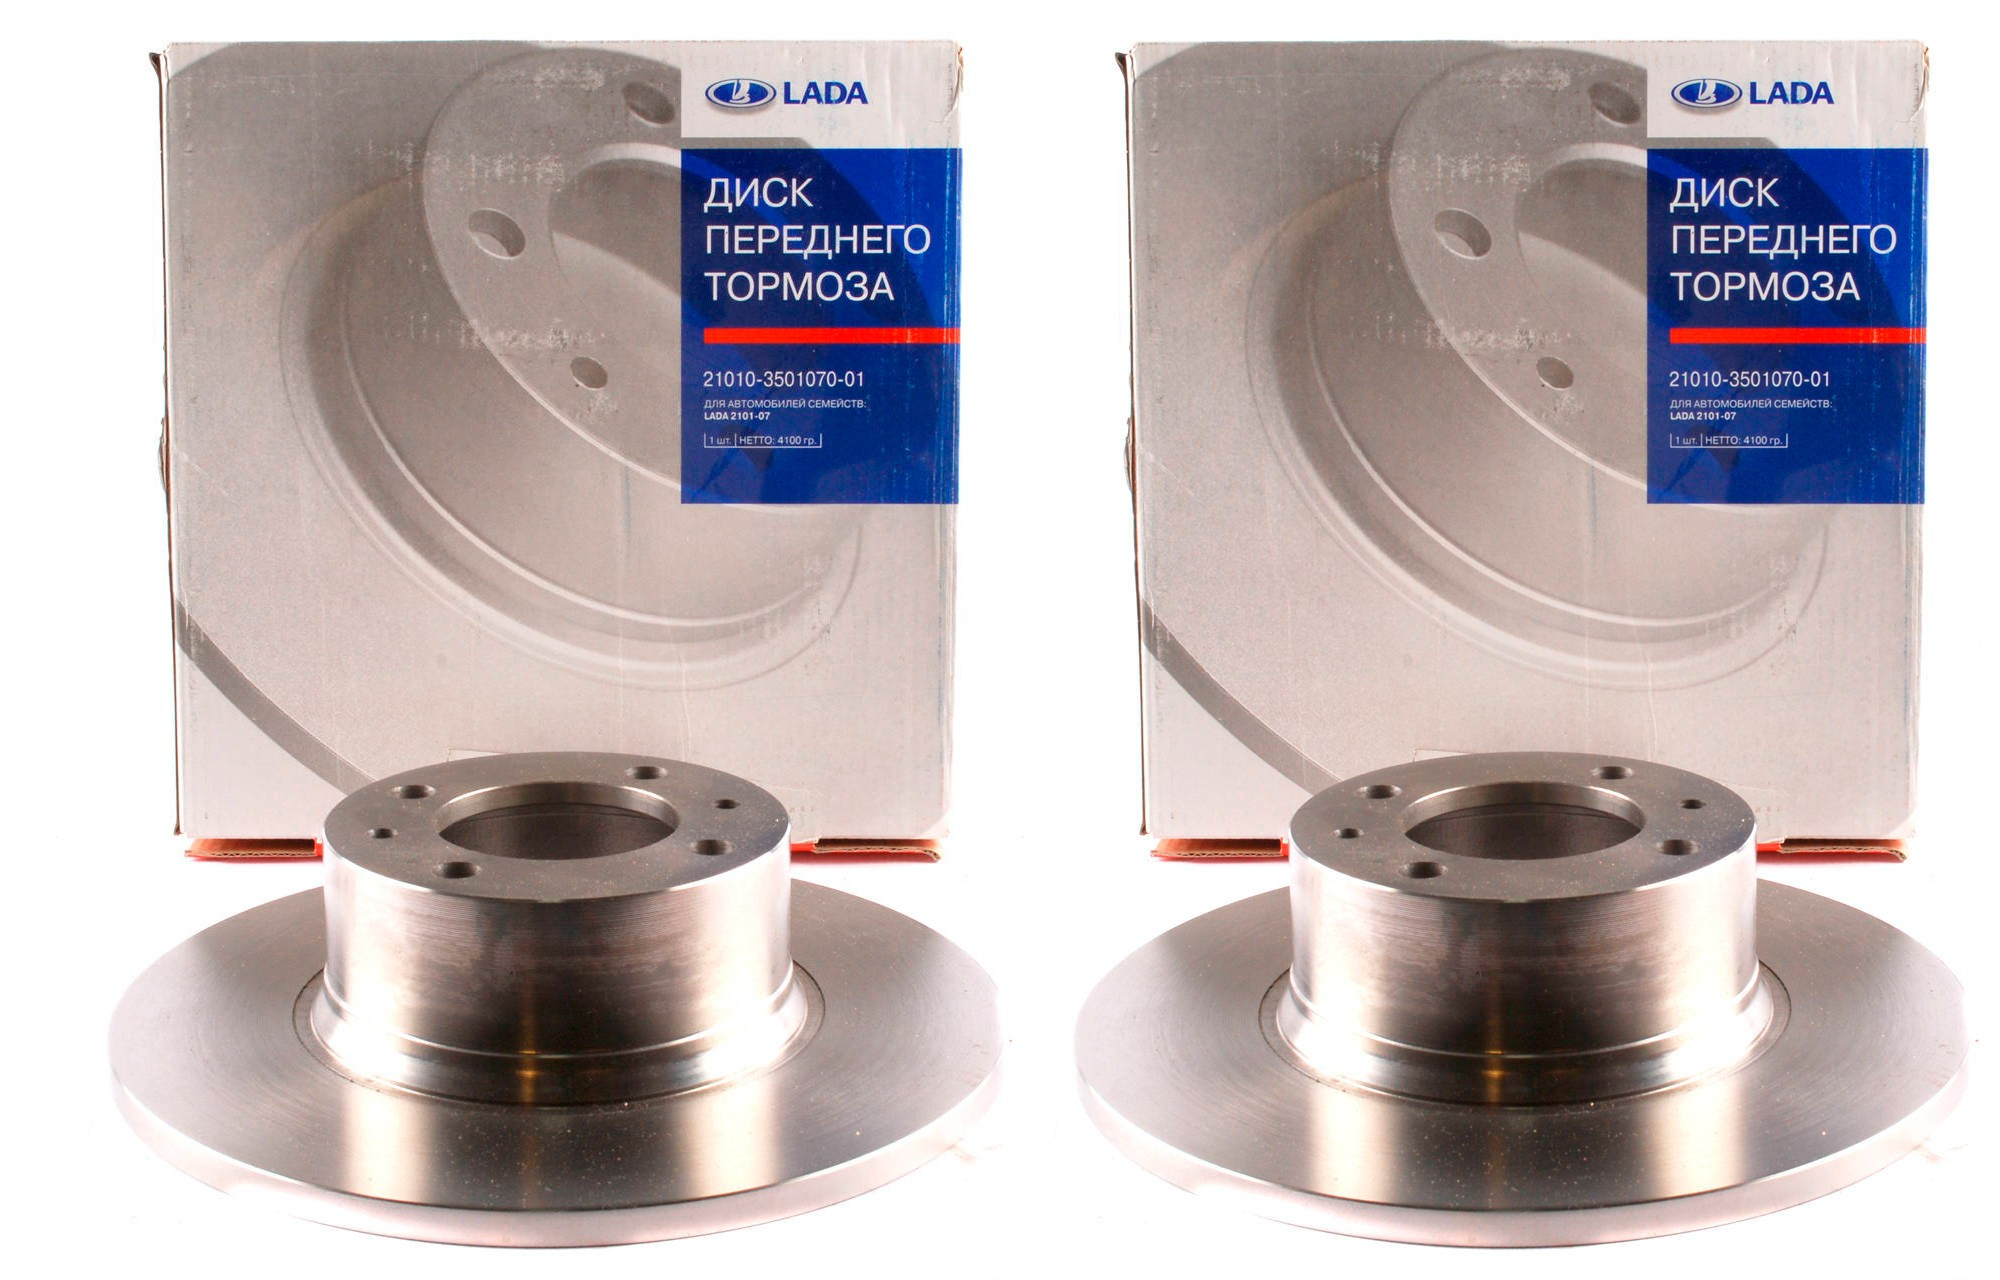 Lada 2101-2107 Front Brake Disc (1 Pc)